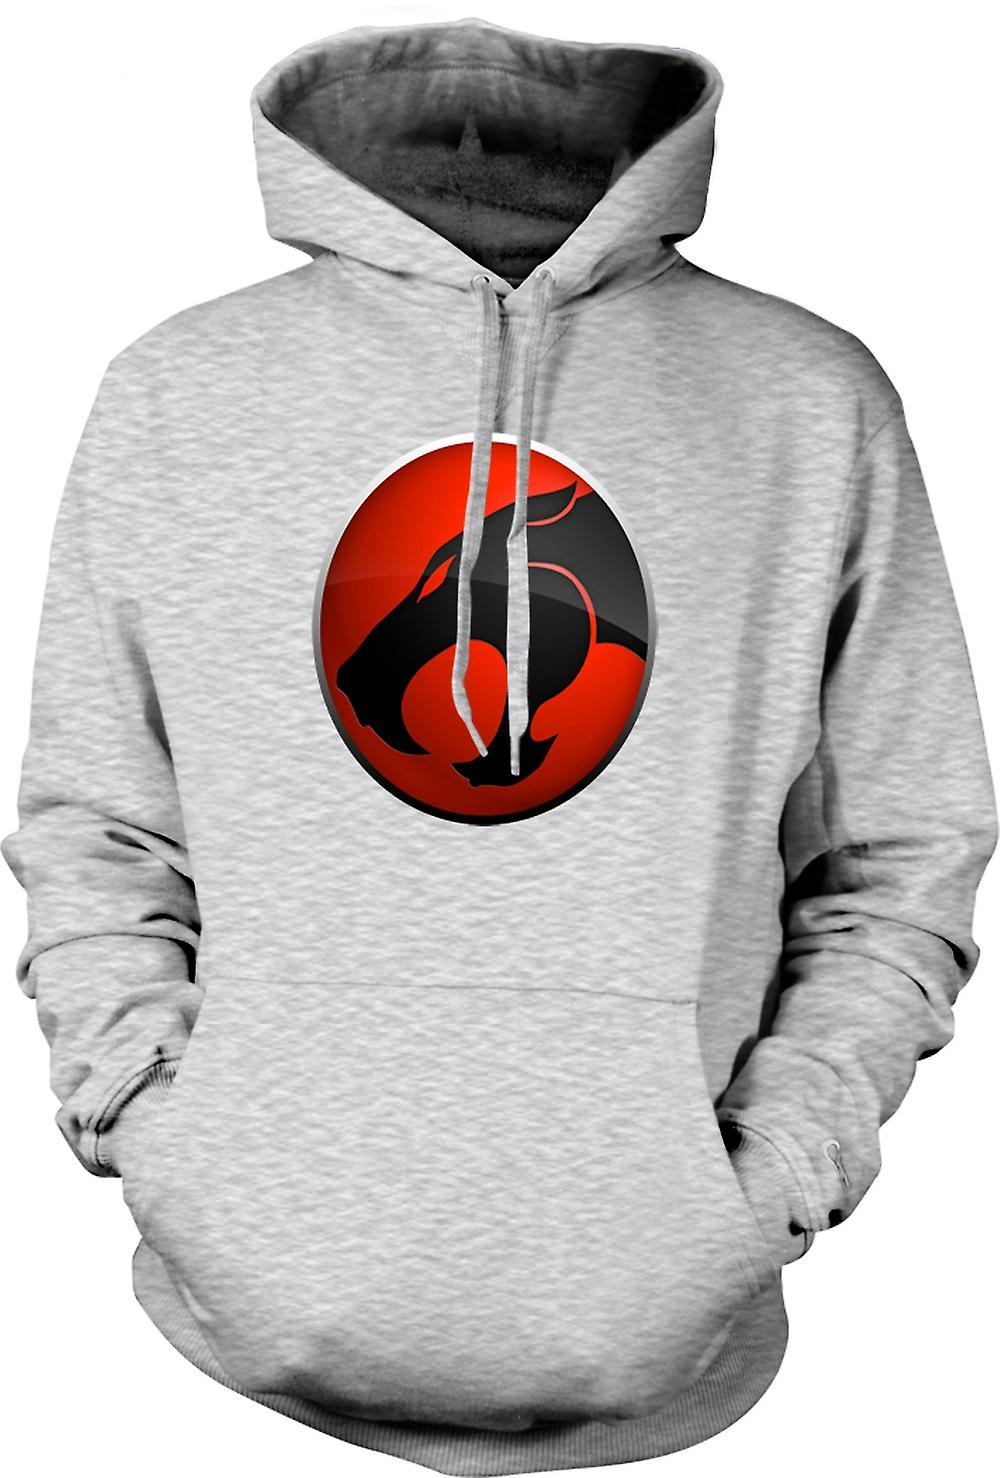 Mens Hoodie - Thundercats Red / Black Logo